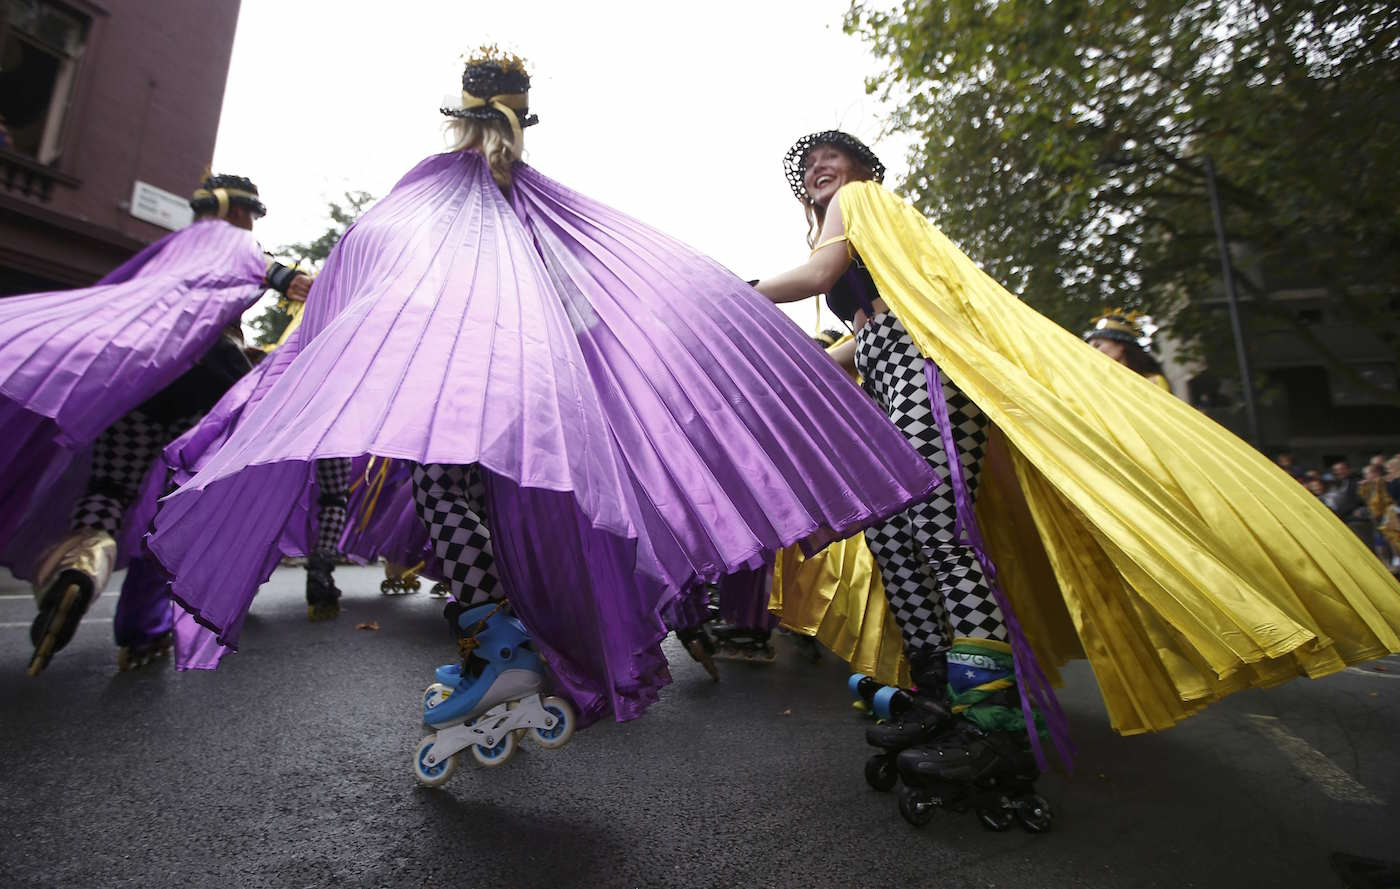 Performers participate in the children's day parade at the Notting Hill Carnival in London, Britain August 28, 2016. REUTERS/Peter Nicholls